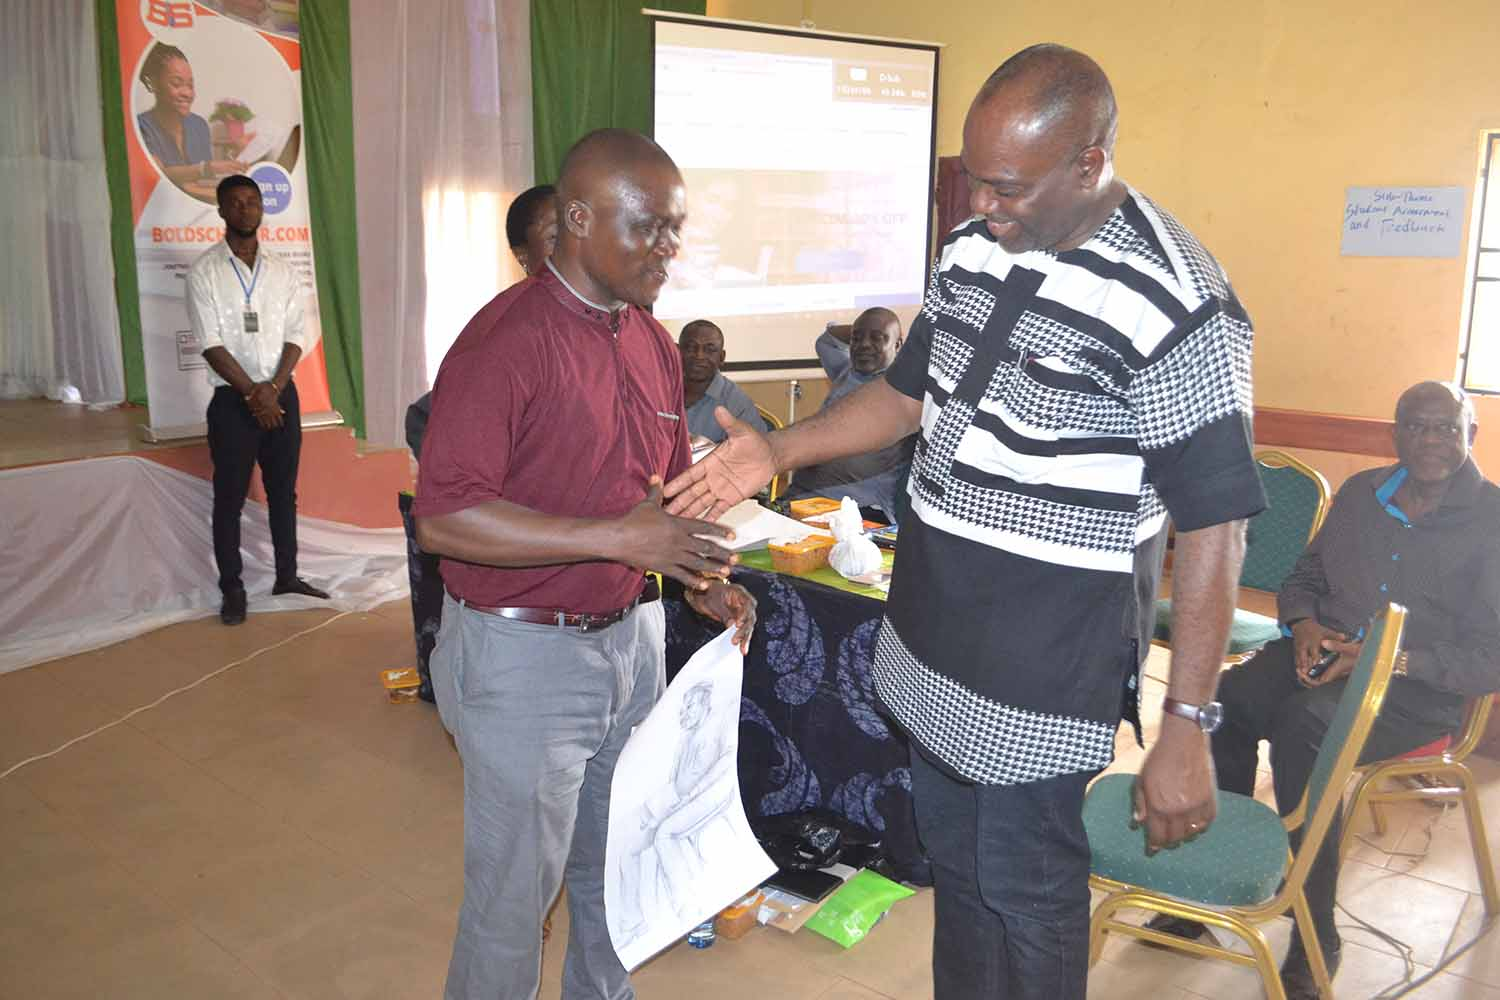 First Prize winner in the Drawing workshop, Mr Ukie Ogbpnna, in a handshake with the VC